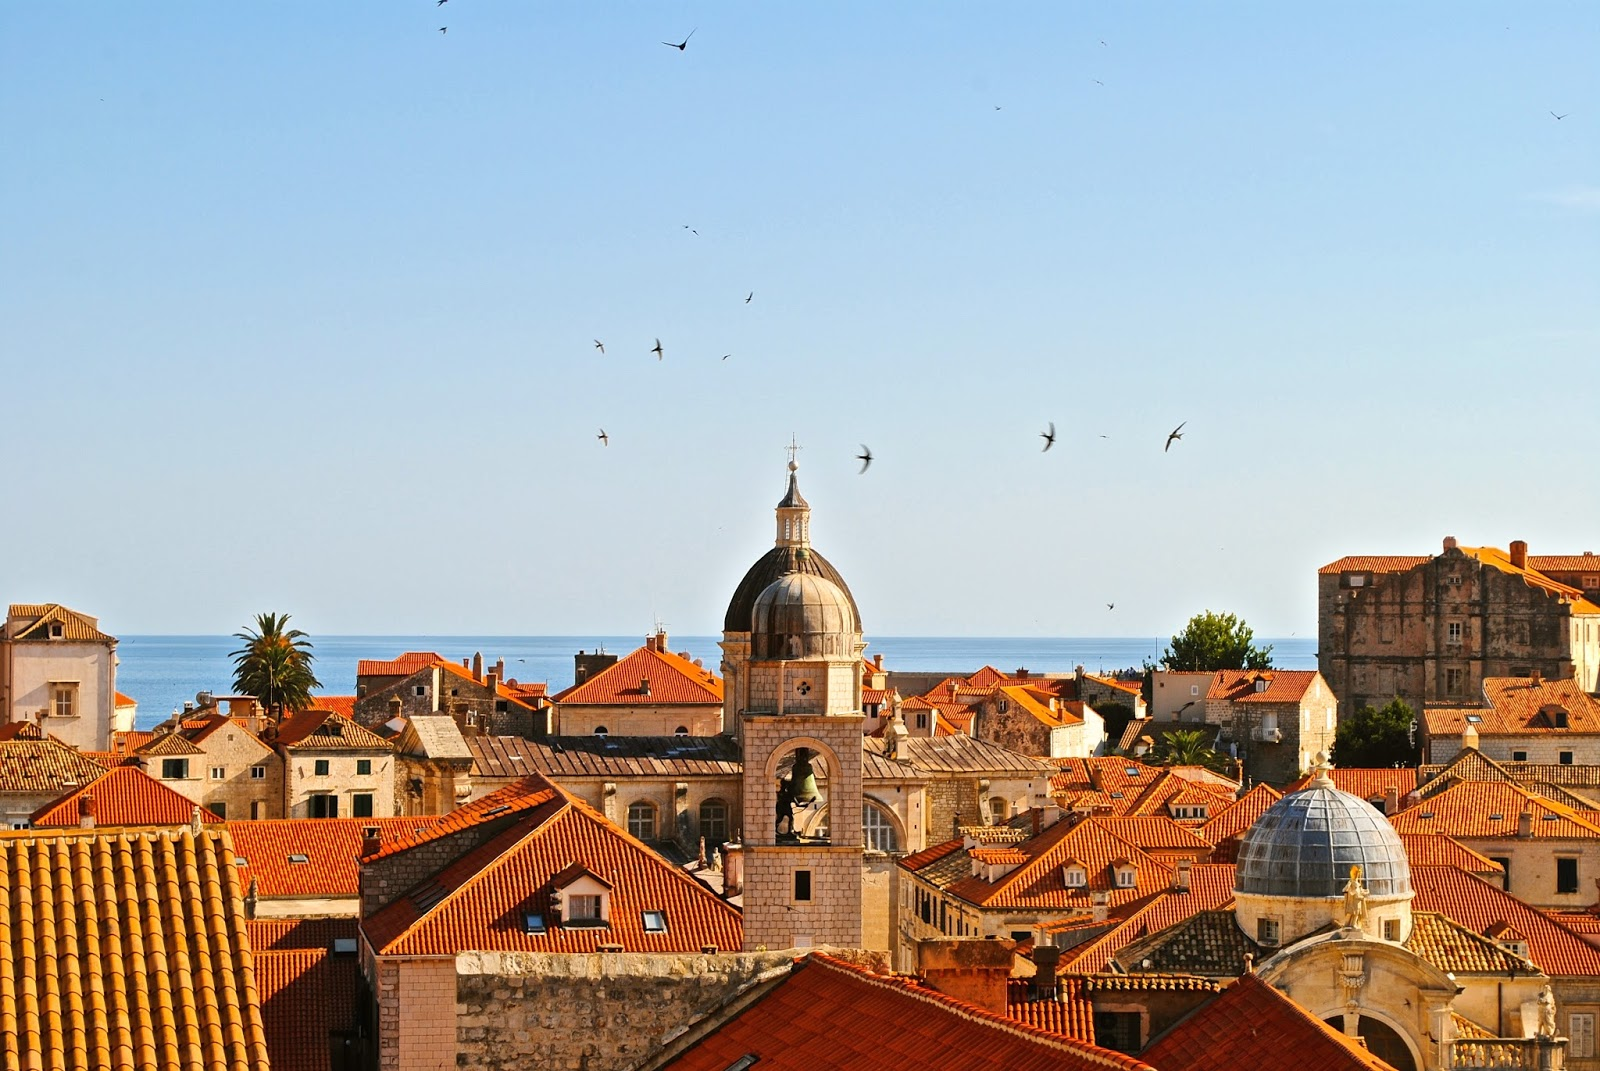 View from the Old Town Walls of Dubrovnik